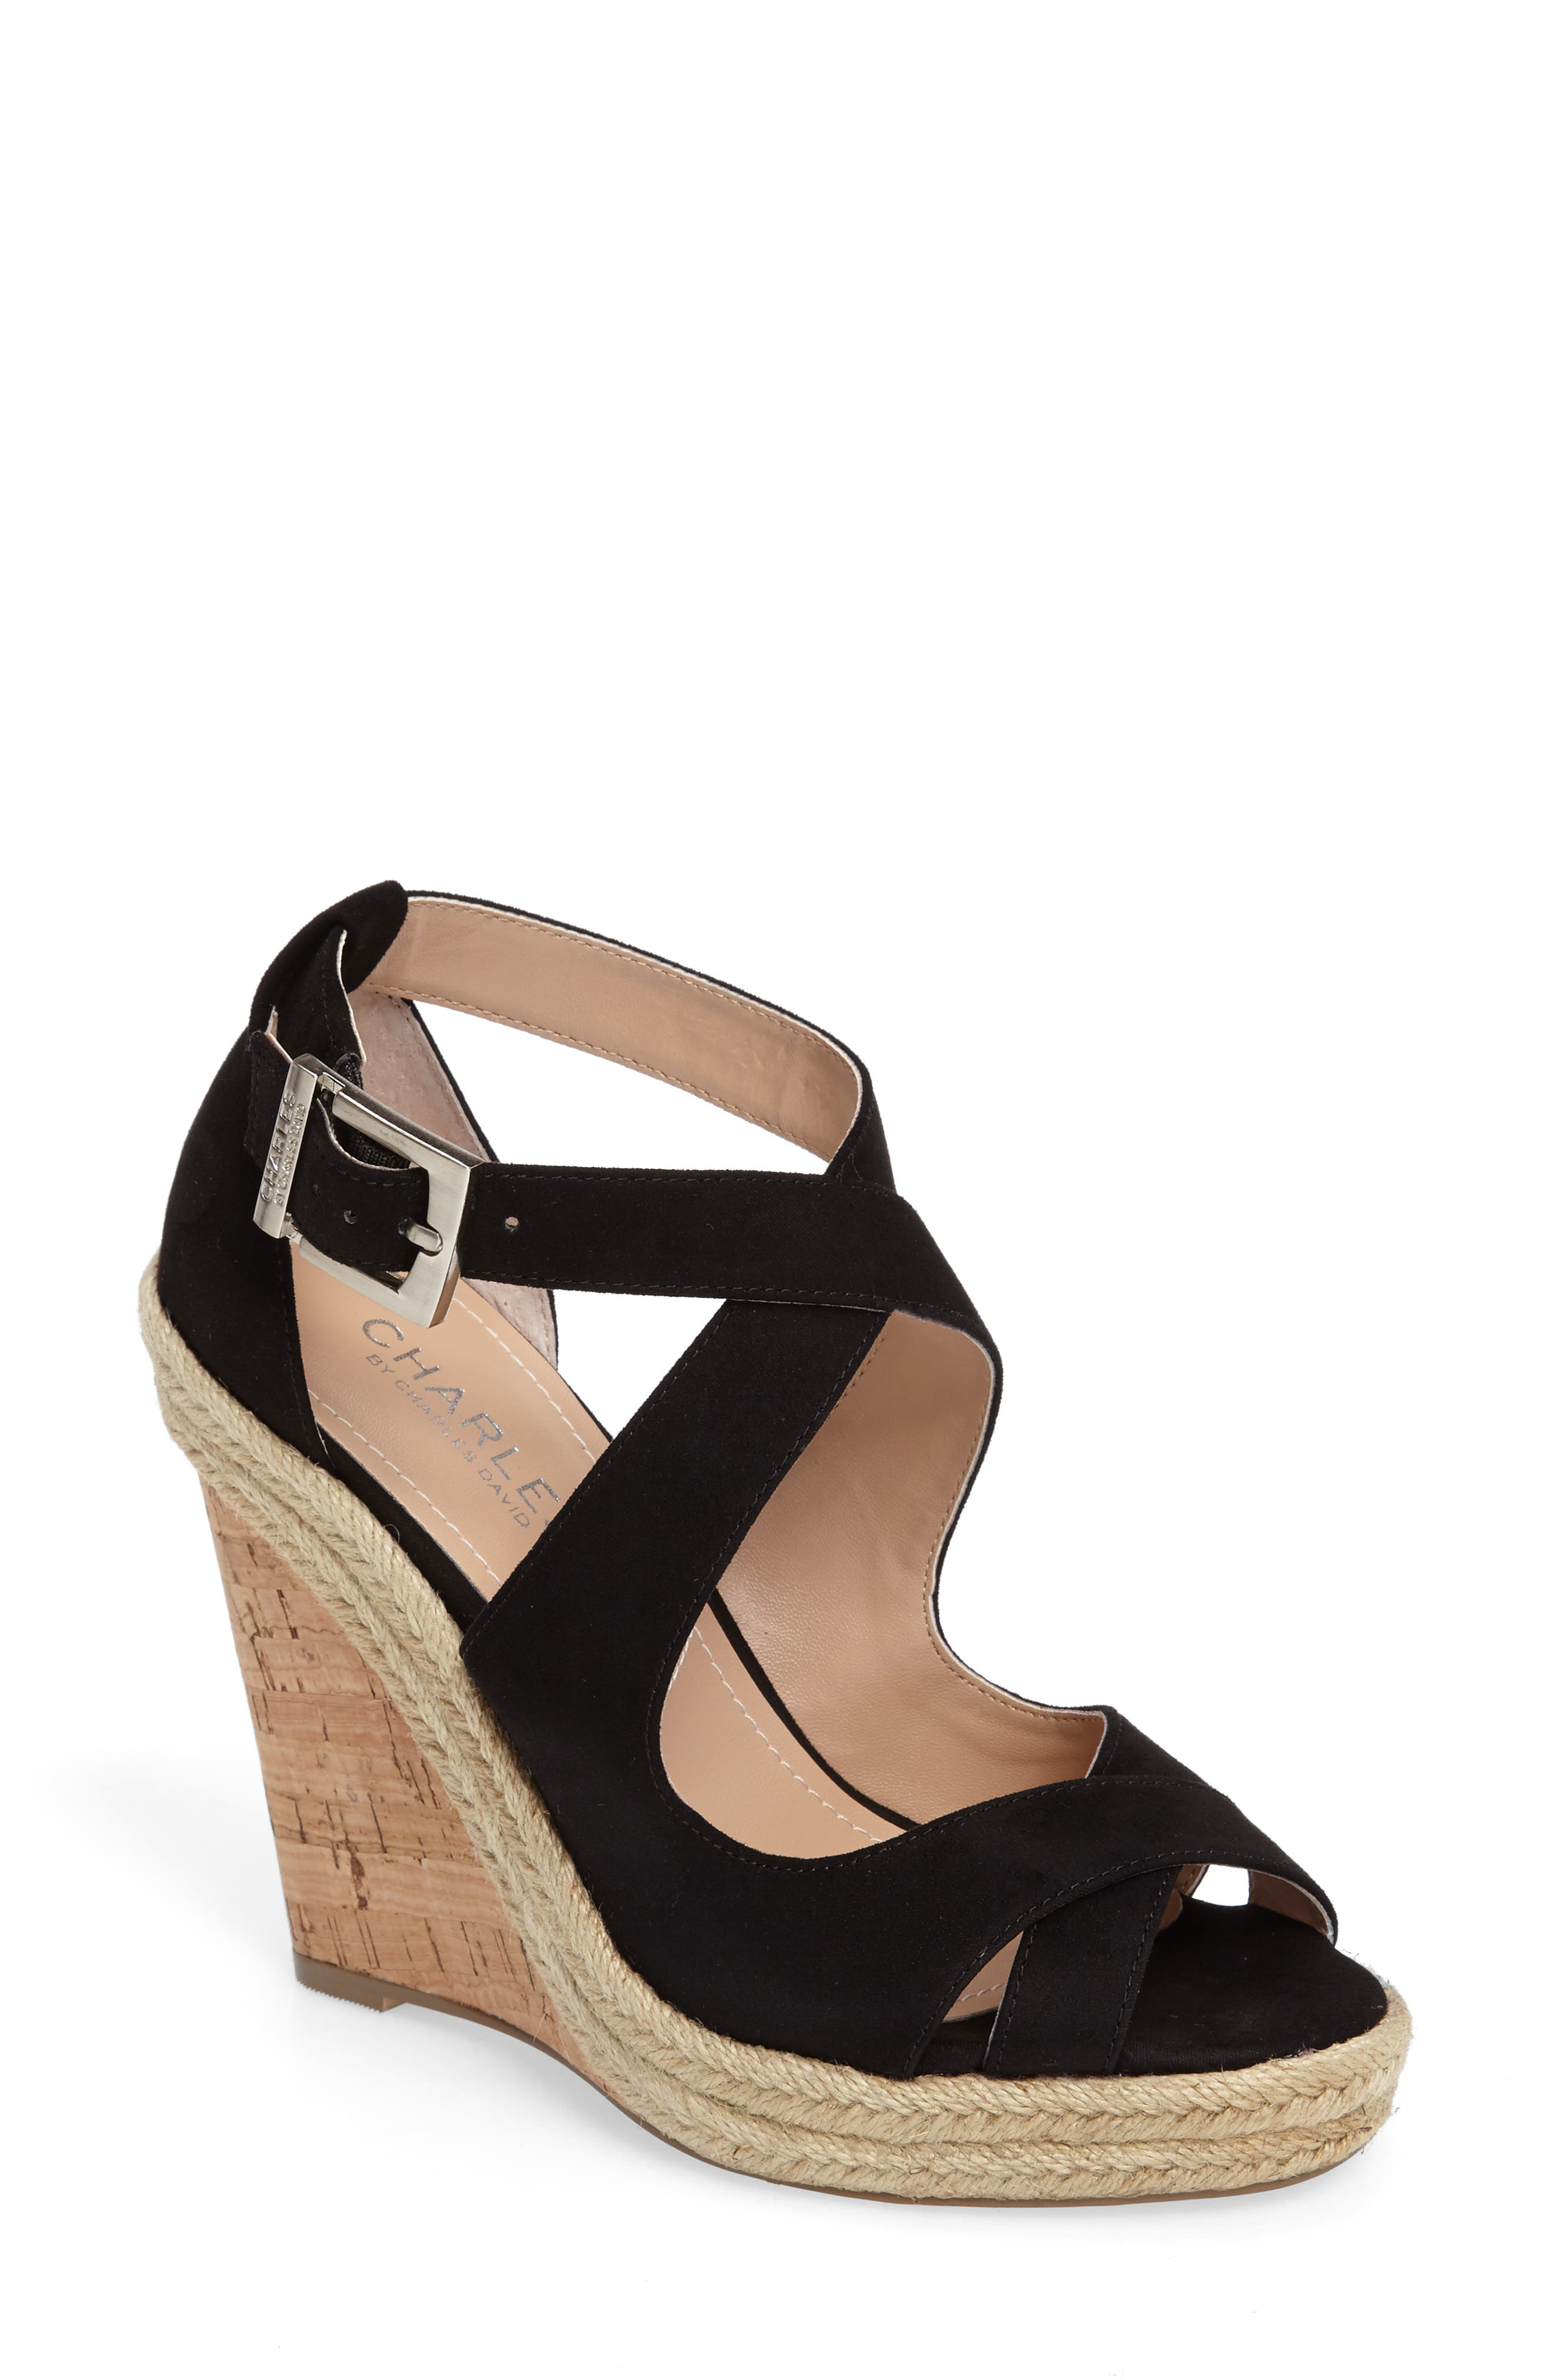 Belfast Strappy Wedge Sandal,                             Main thumbnail 1, color,                             001